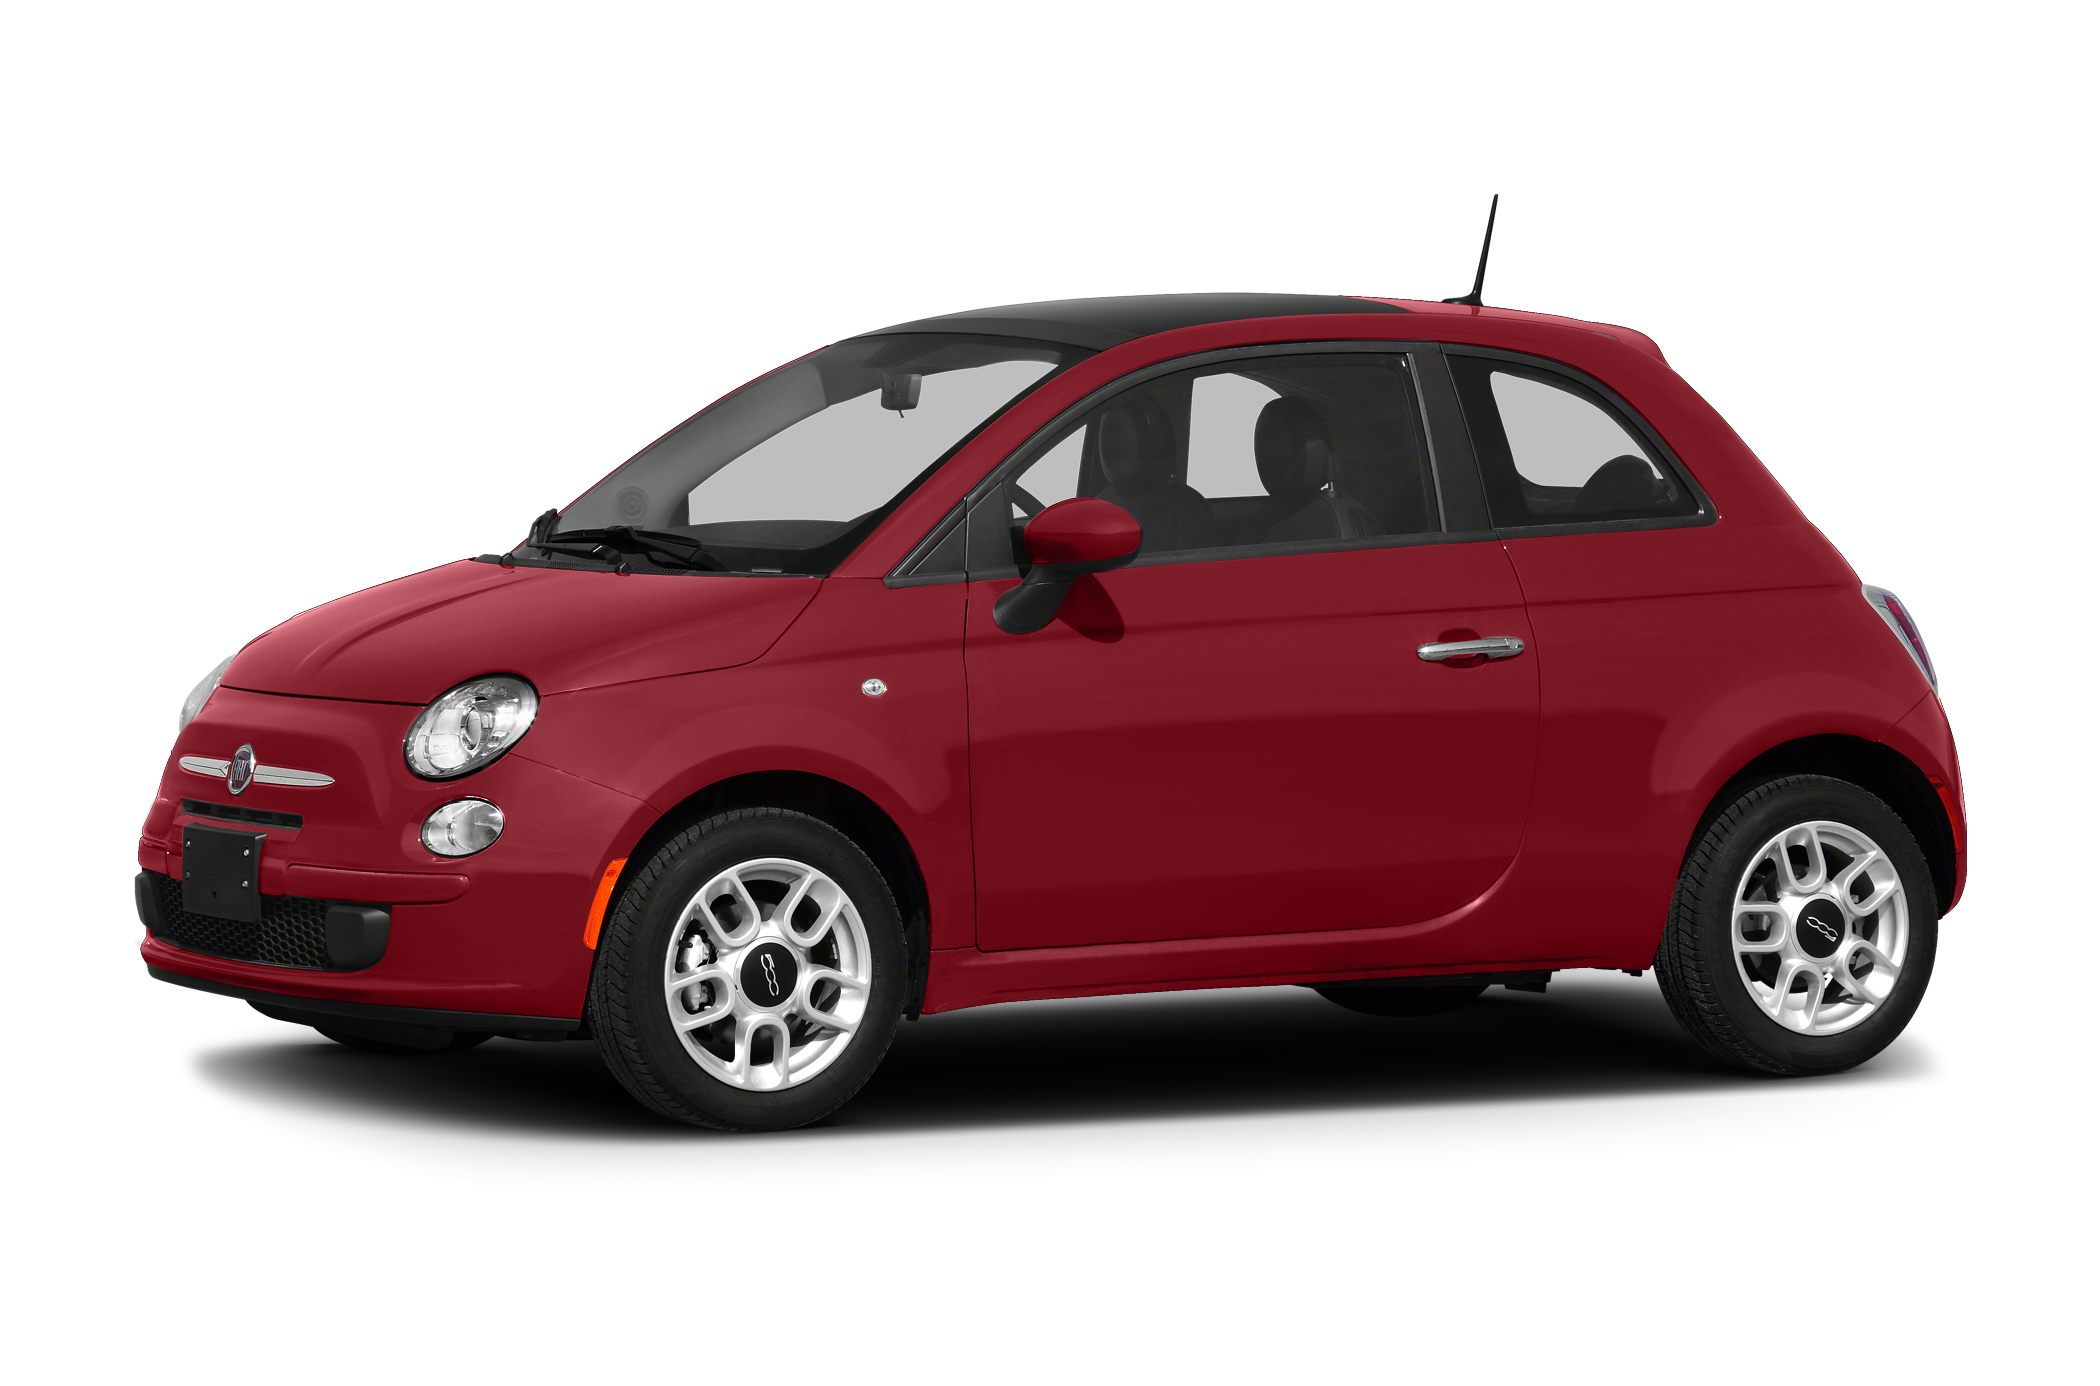 2013 Fiat 500 Pop Hatchback for sale in Maysville for $11,900 with 1,683 miles